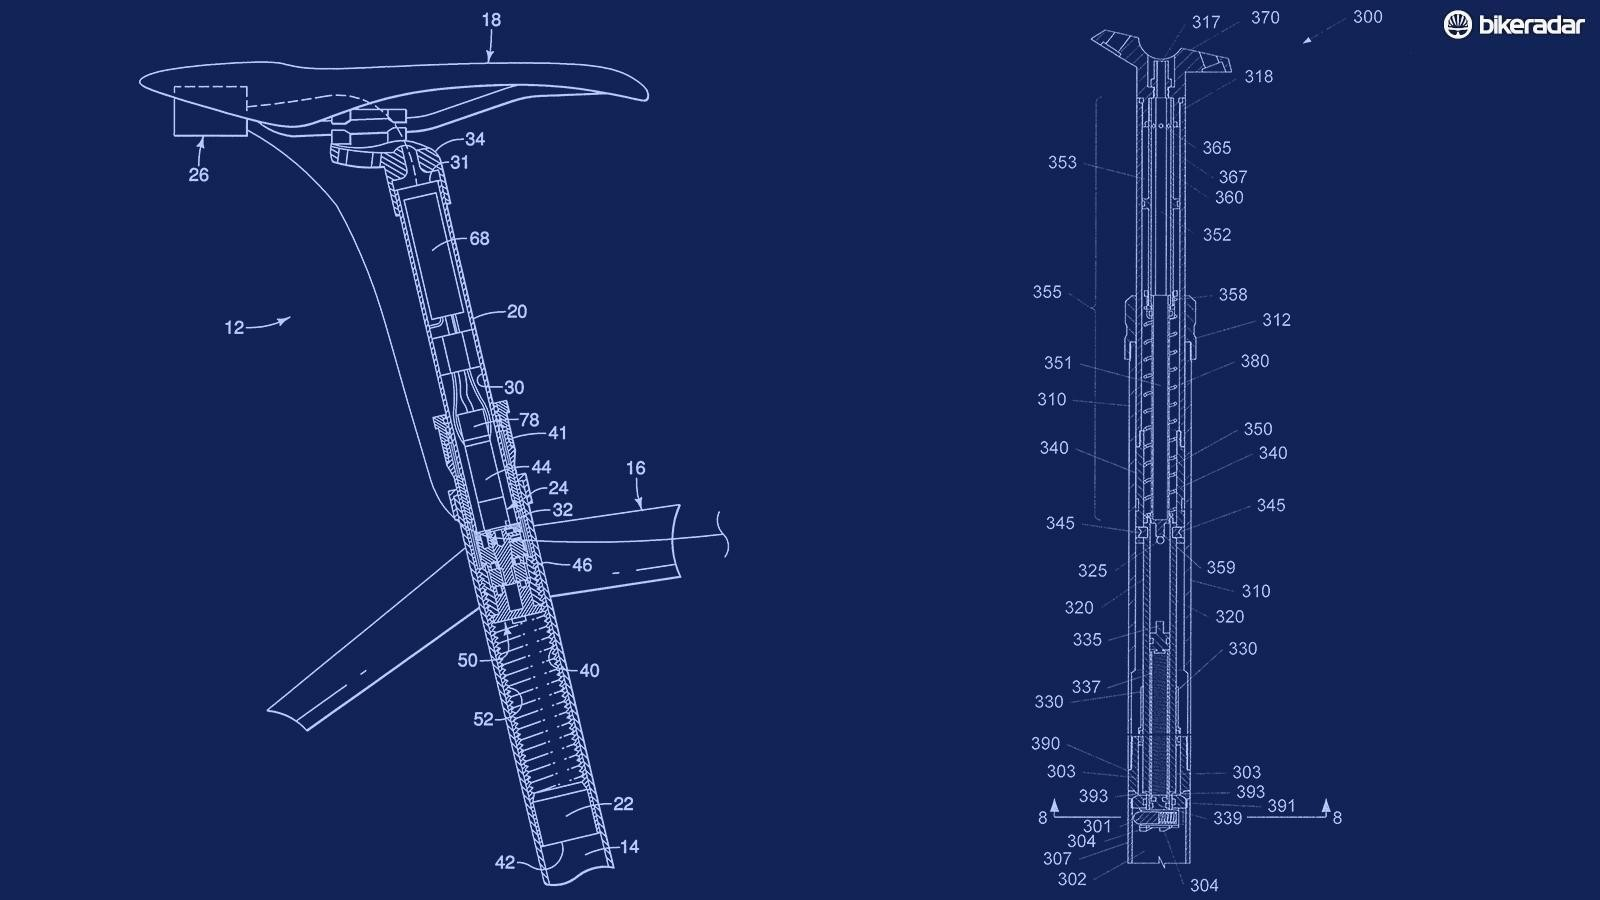 Both Shimano and Trek have patents on auto-dropping seatposts